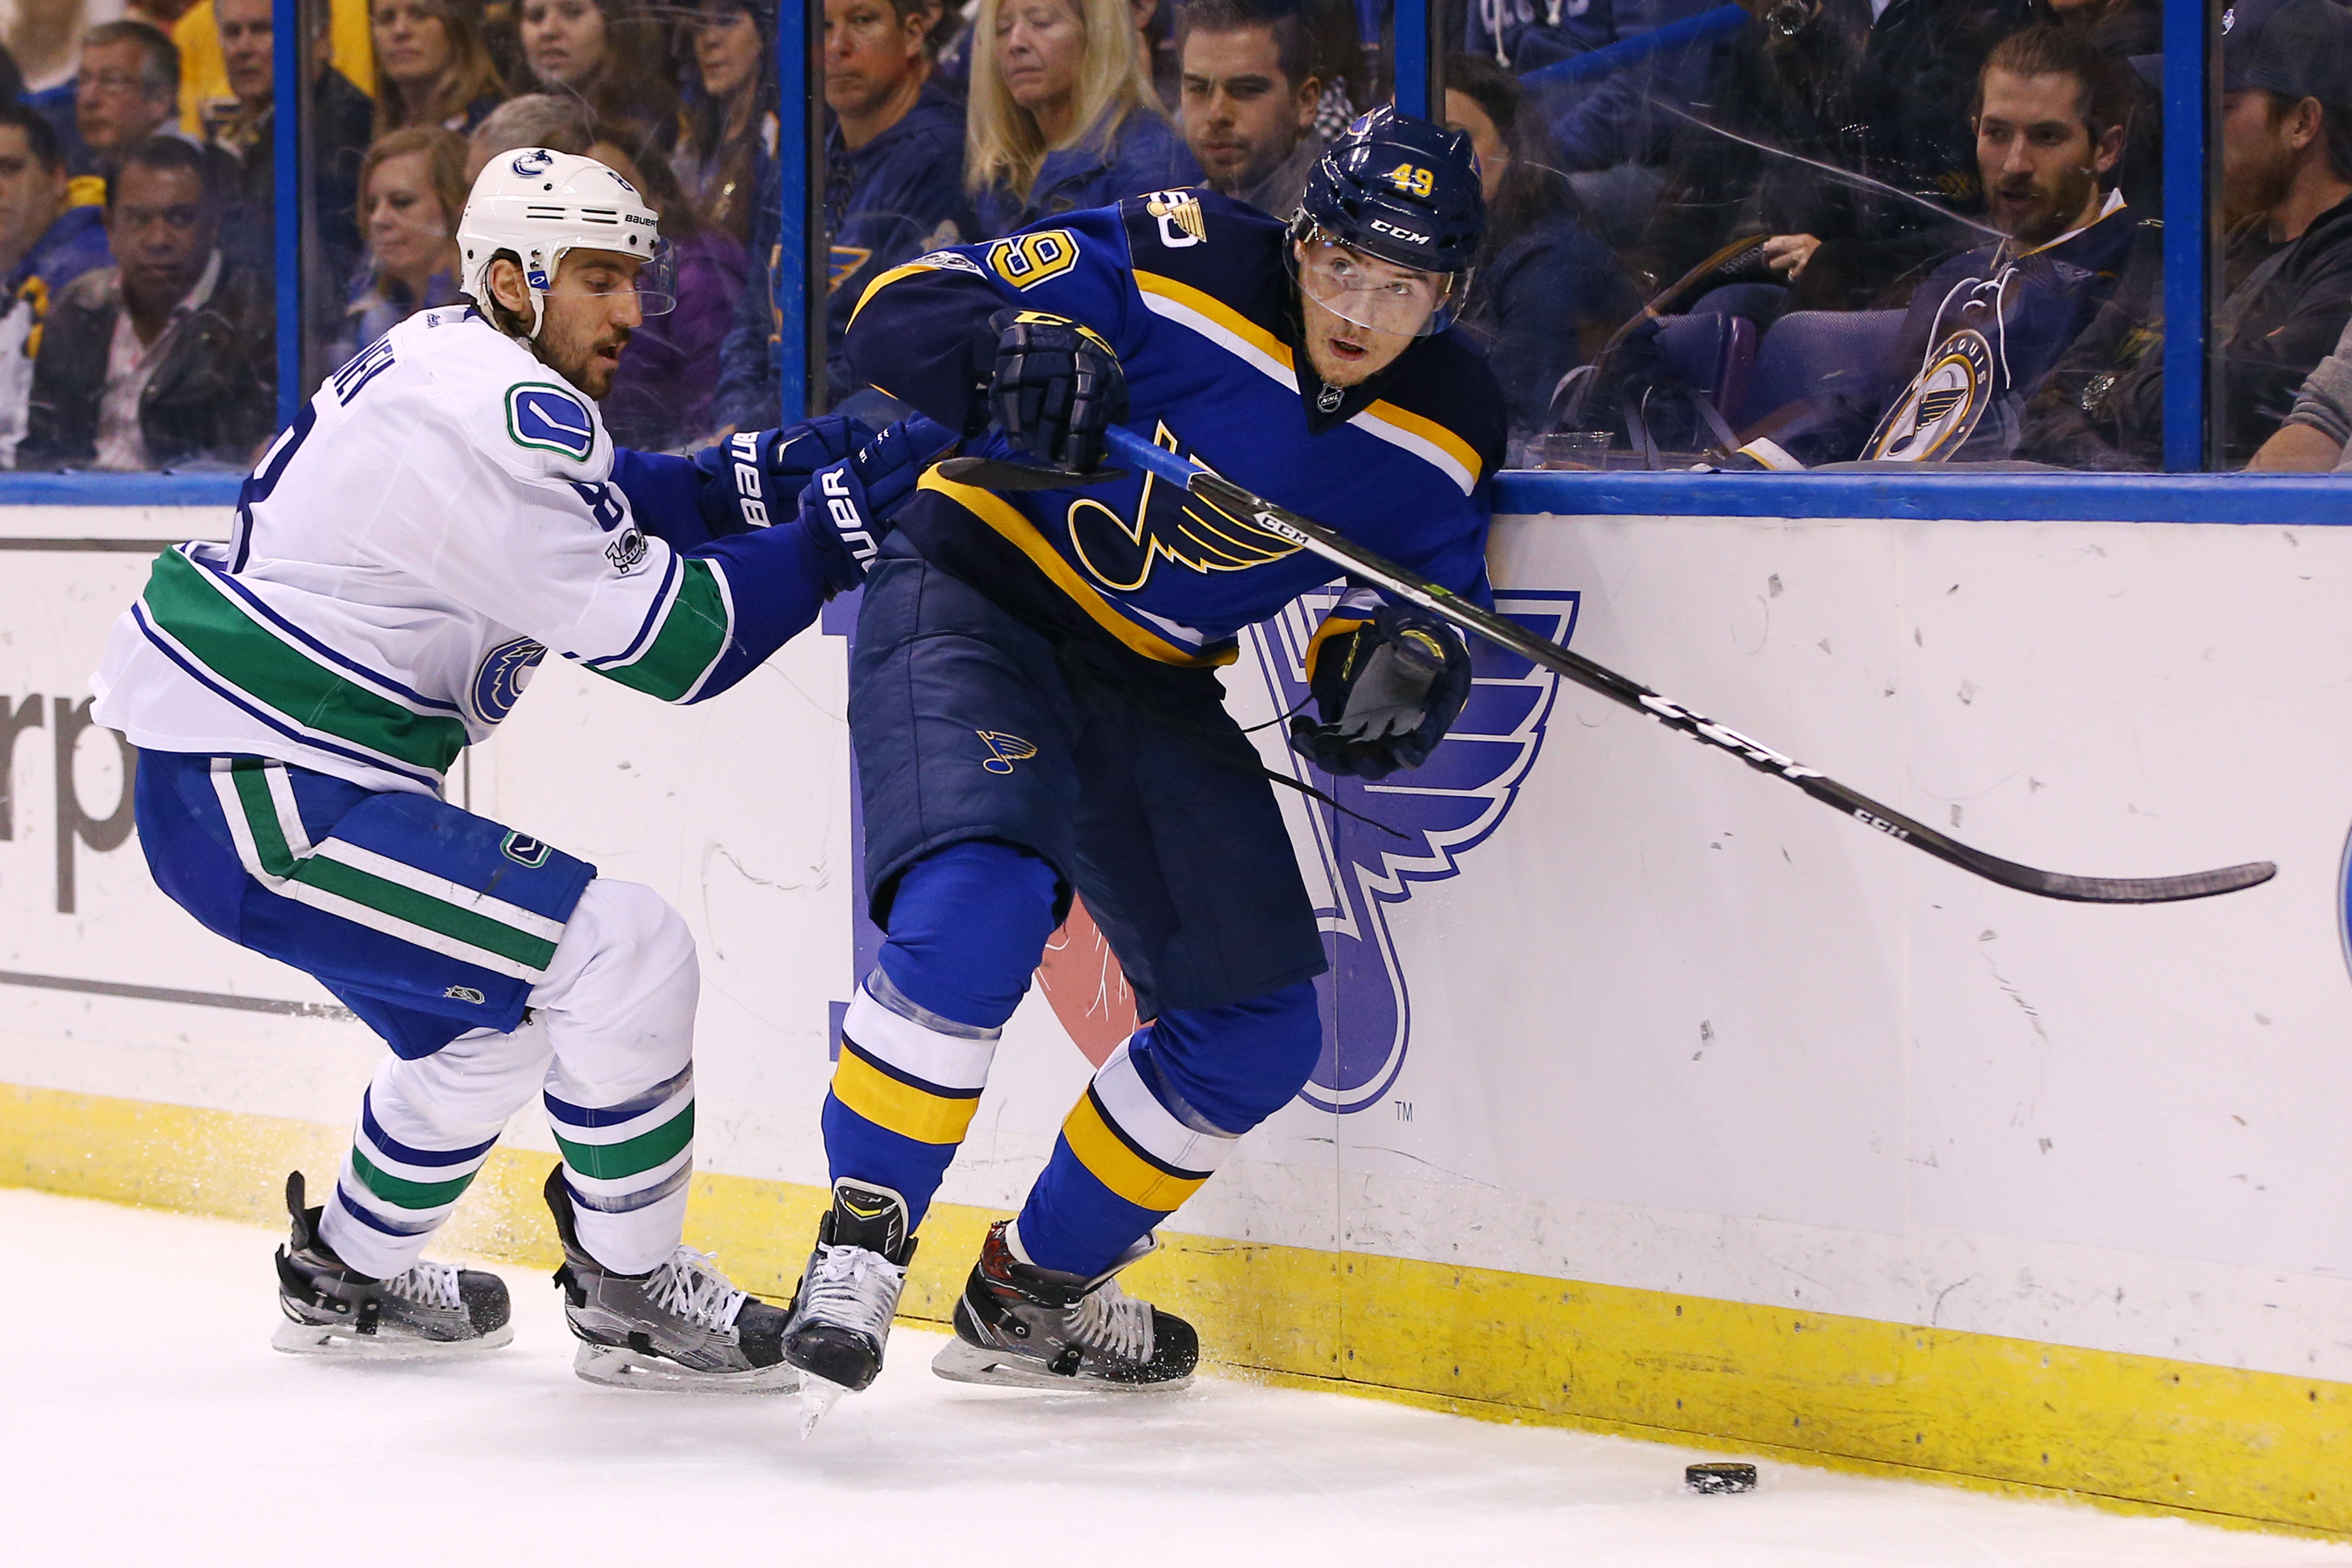 9881358-nhl-vancouver-canucks-at-st.-louis-blues